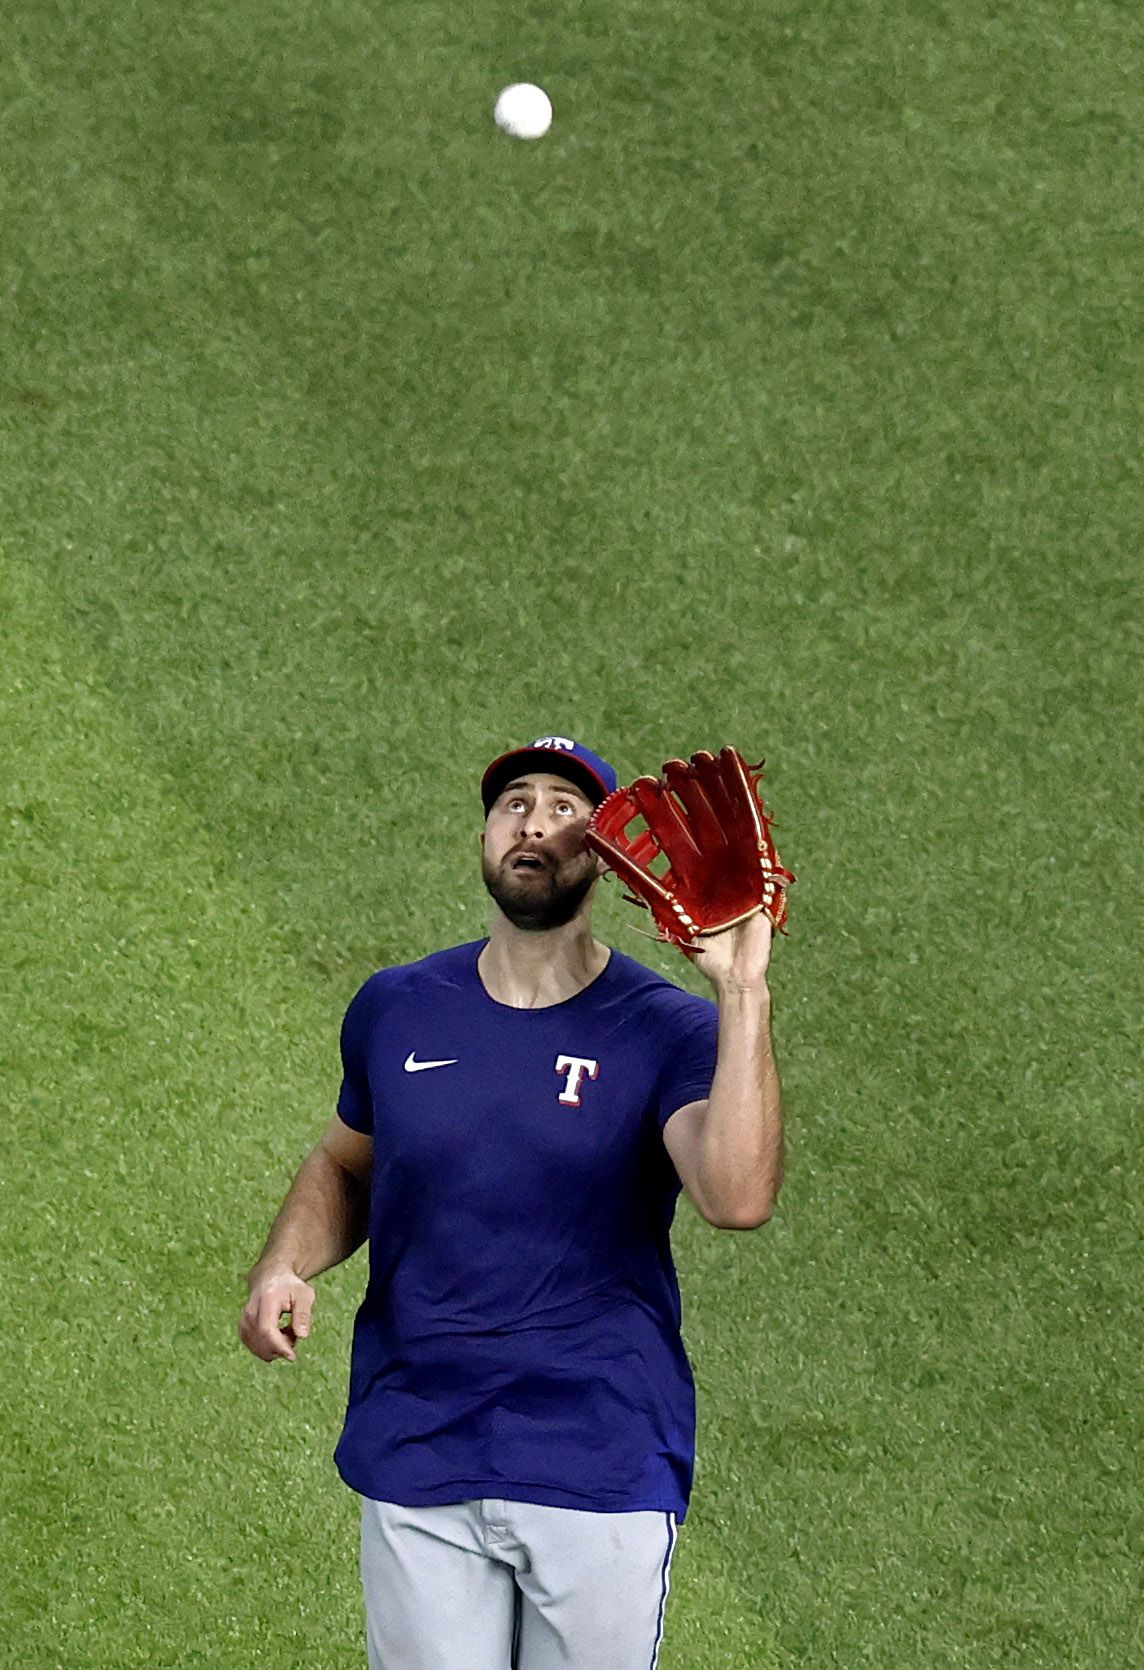 Texas Rangers outfielder Joey Gallo fields a fly ball during Summer Camp practice inside Globe Life Field in Arlington, Texas, Friday, July 10, 2020. Gallo made his first appearance after clearing the COVID-19 intake process but did not participate in the simulated game. (Tom Fox/The Dallas Morning News)